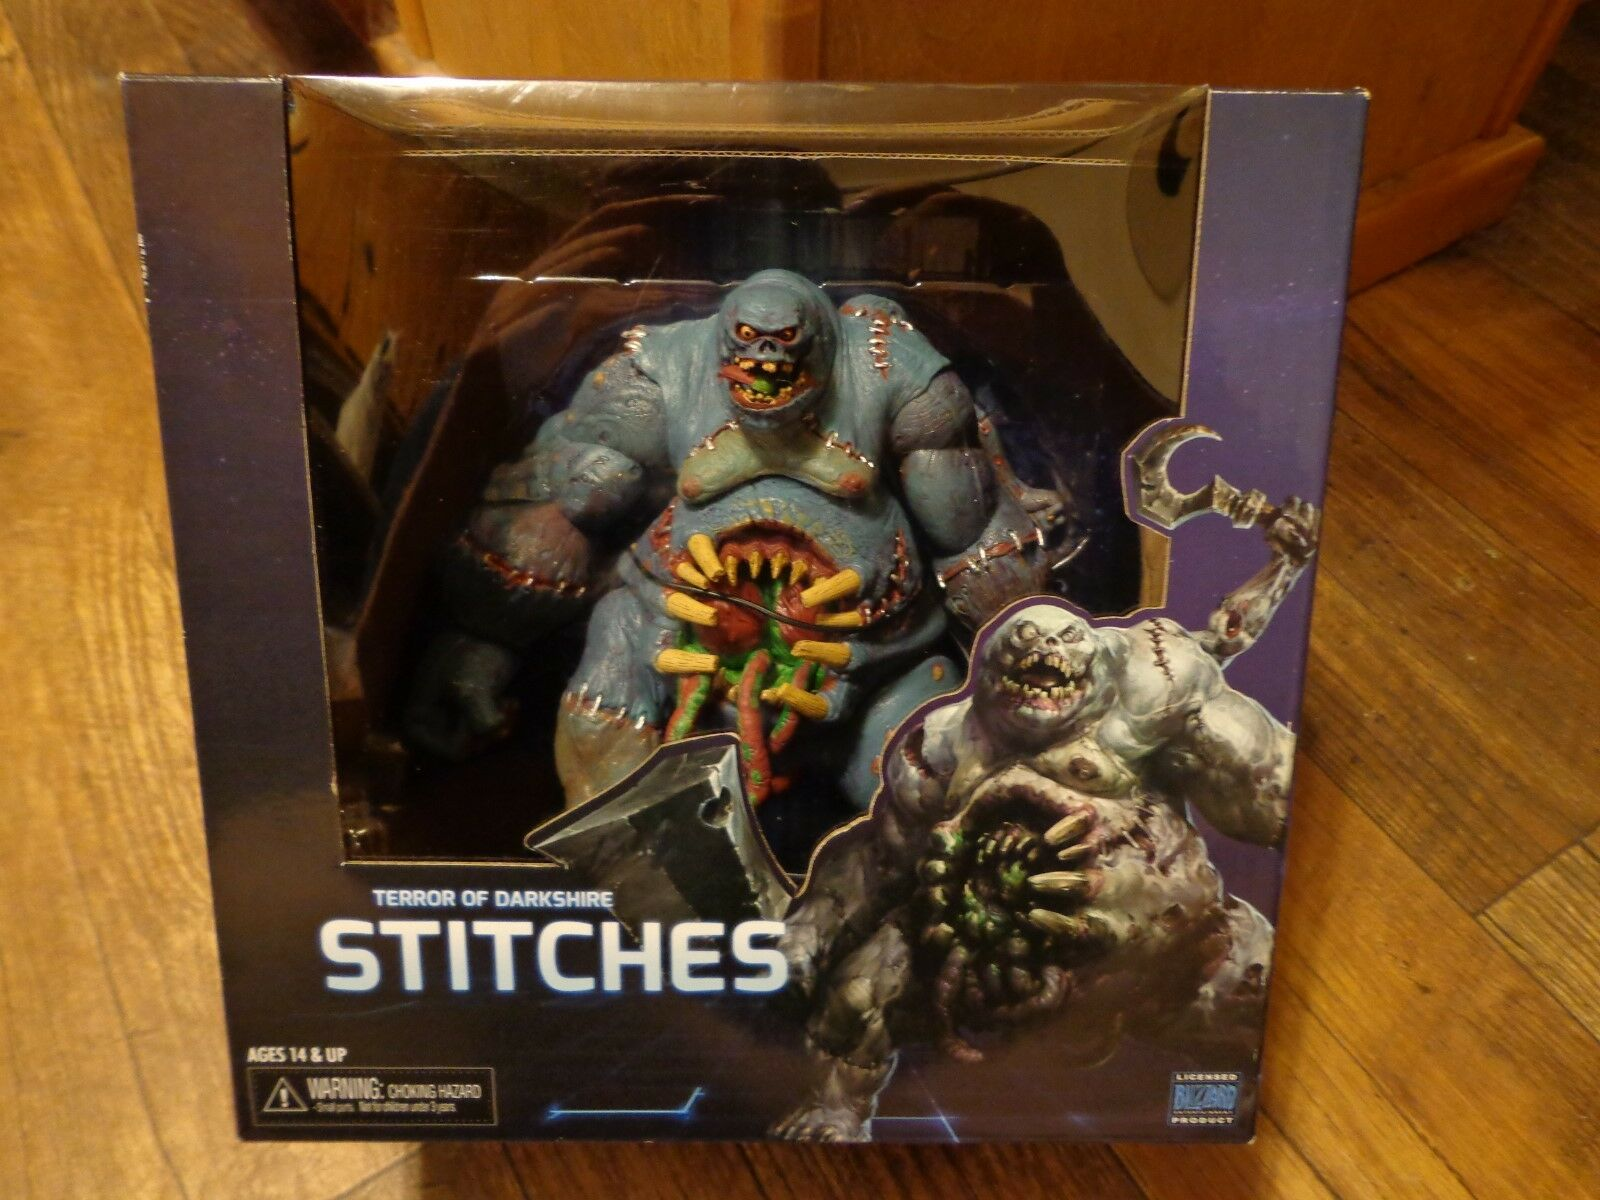 2015 NECA--HEROES OF THE STORM--TERROR OF DARKSHIRE STITCHES FIGURE (NEW)